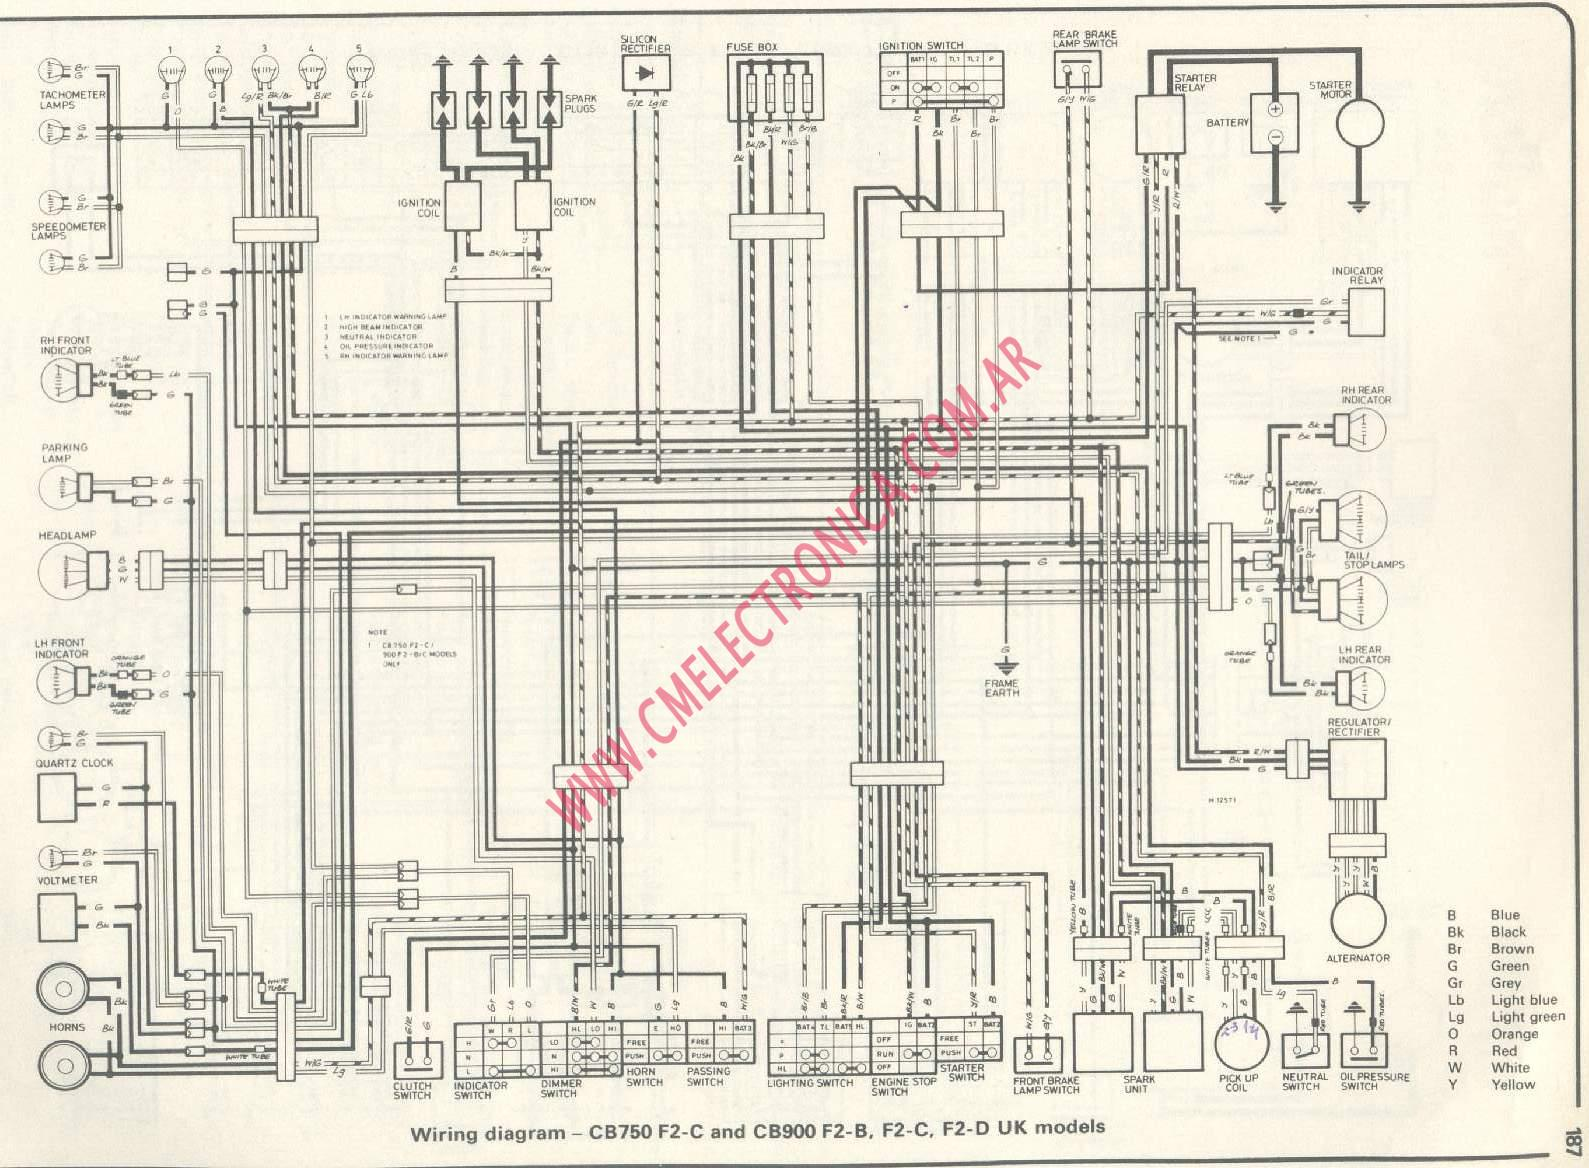 1981 Cb900 Wiring Diagram - Free Download Wiring Diagram